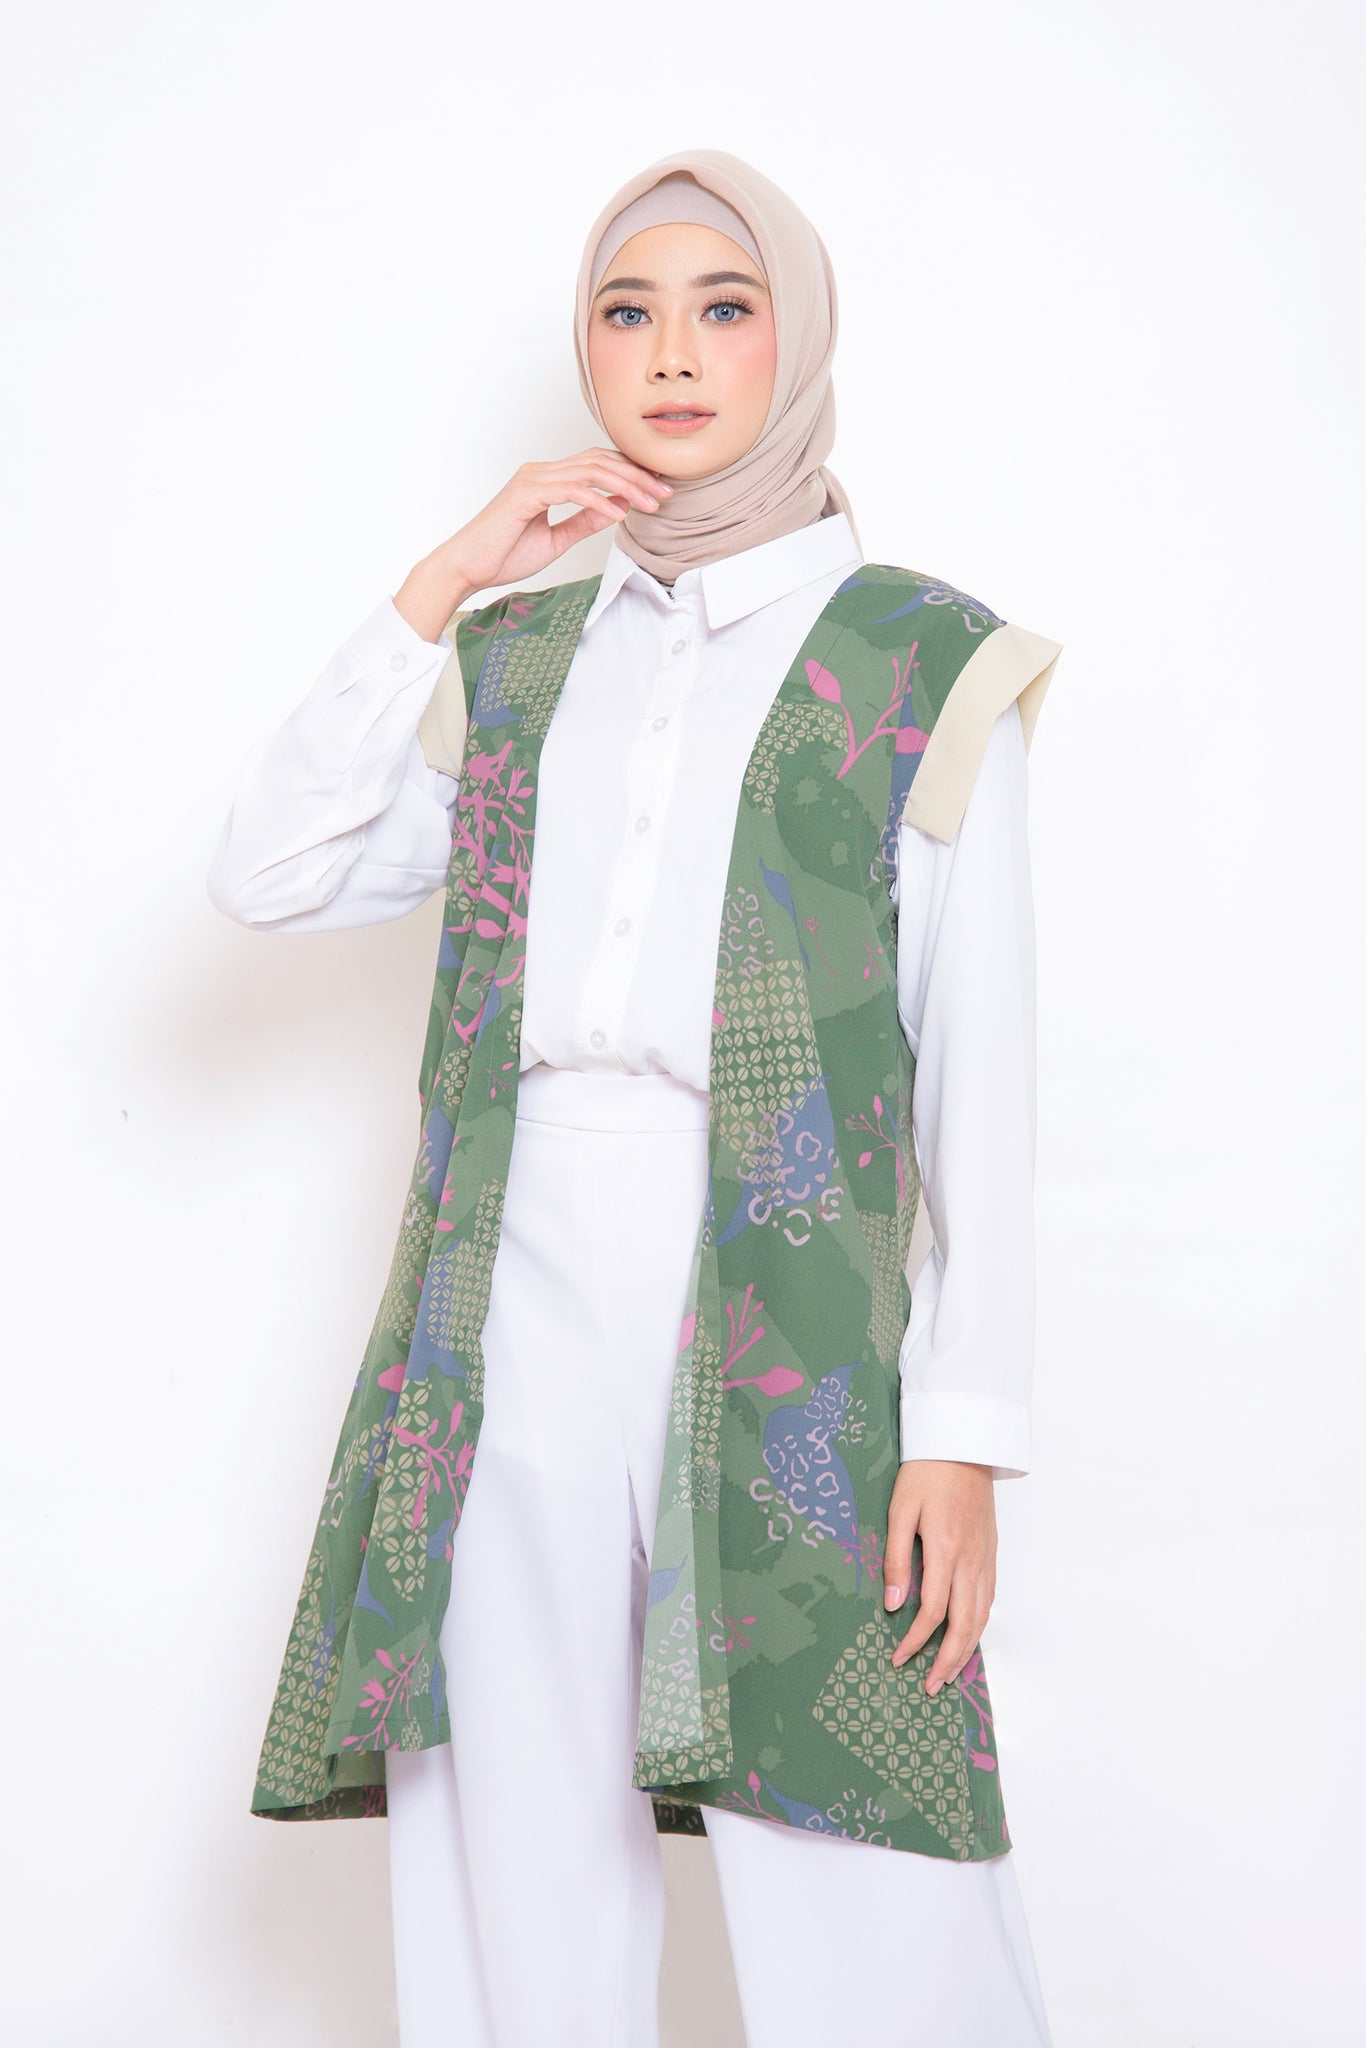 ZM - Melly Green Outer - Jelita Indonesia - Edisi Sidikalang